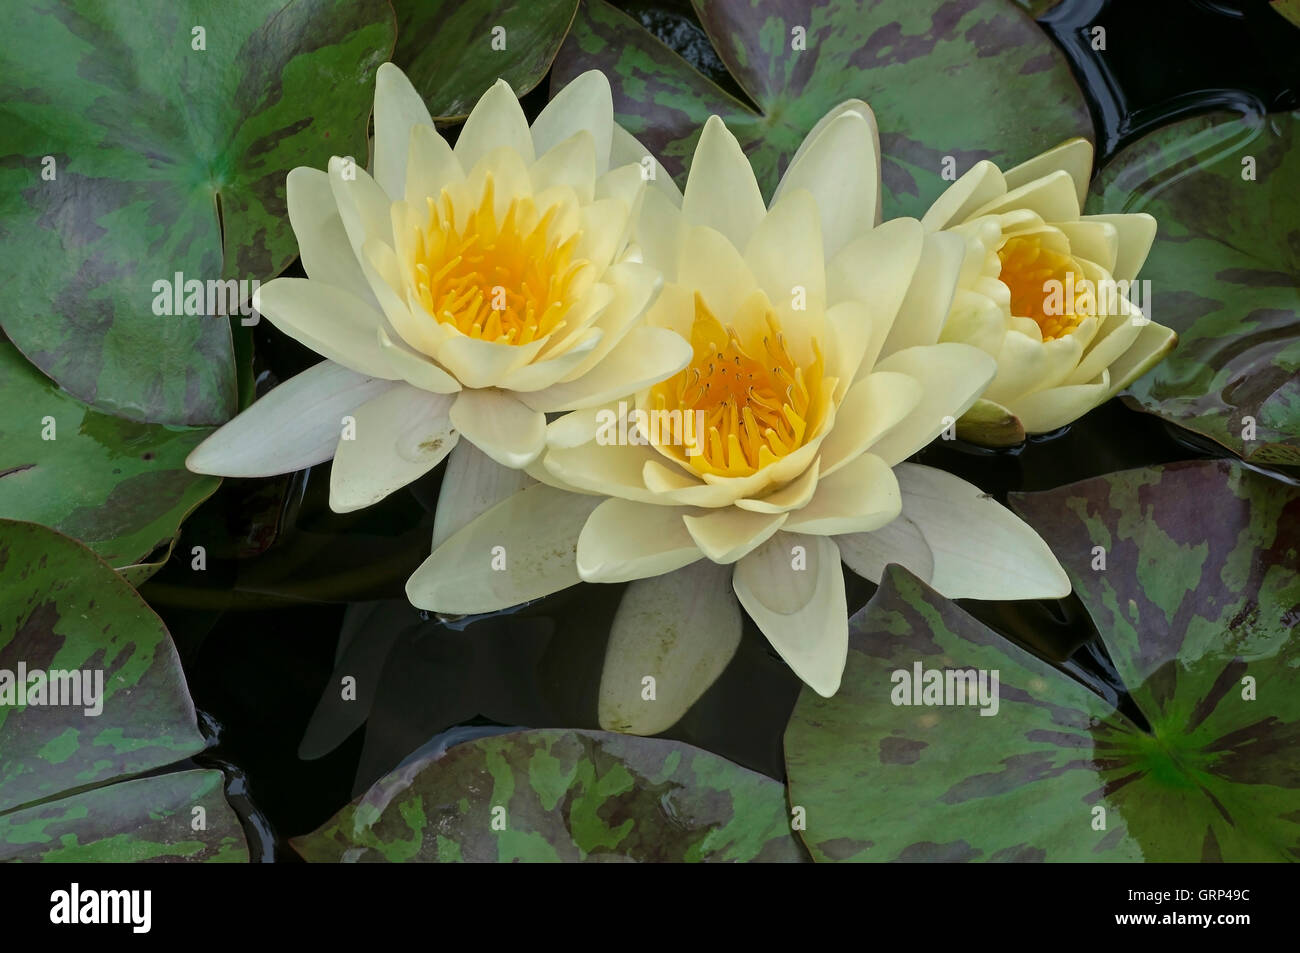 Water marsh lily stock photos water marsh lily stock images alamy fragrant water lily flowers nymphaea odorata eastern usa stock image izmirmasajfo Gallery